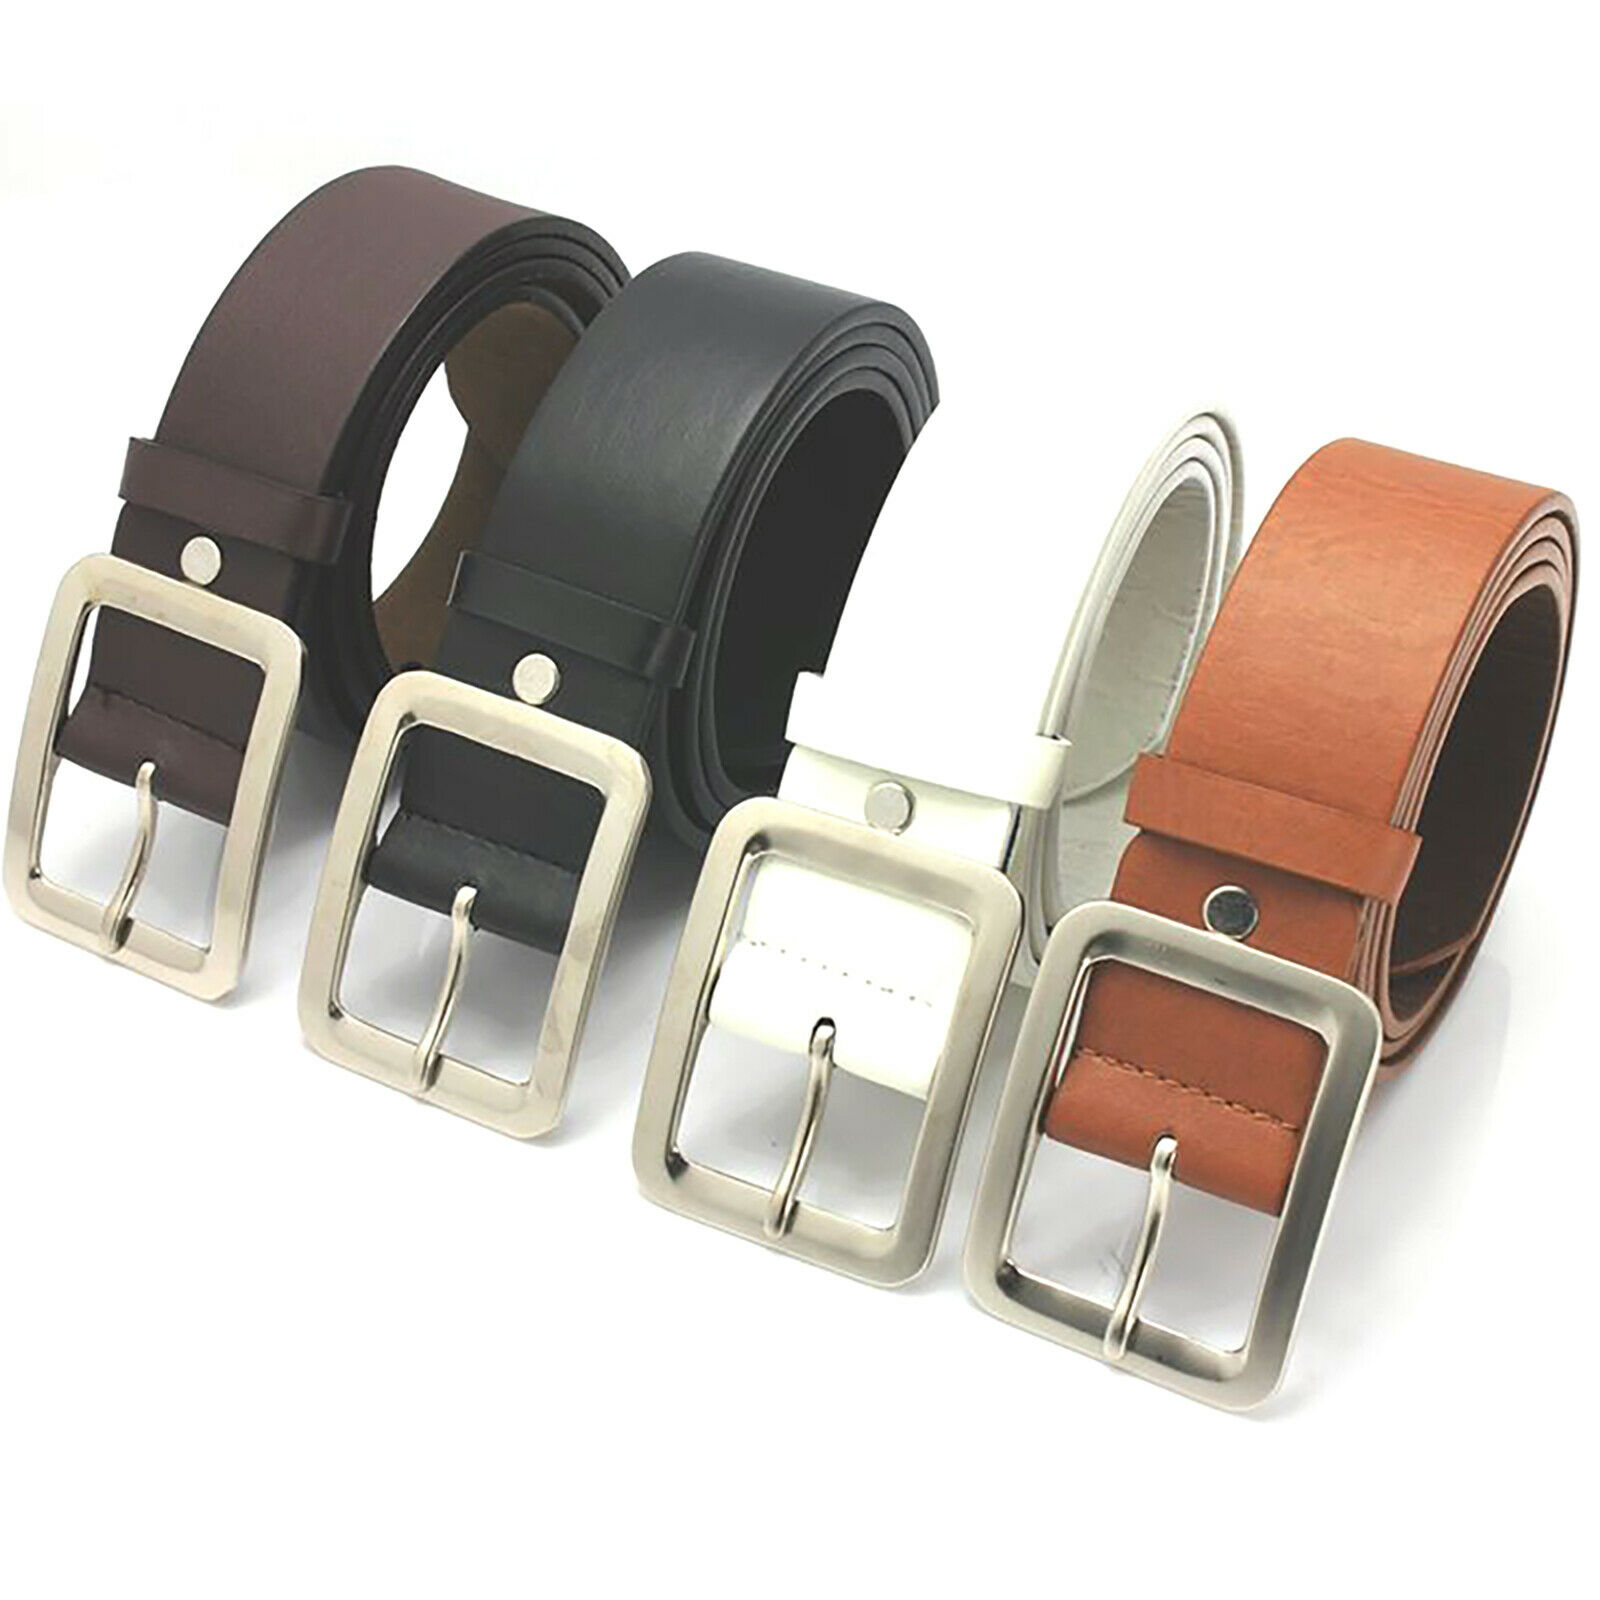 Woman Leather Buckle Belts Casual Dress Jeans Adjustable Waistband Waists Strap